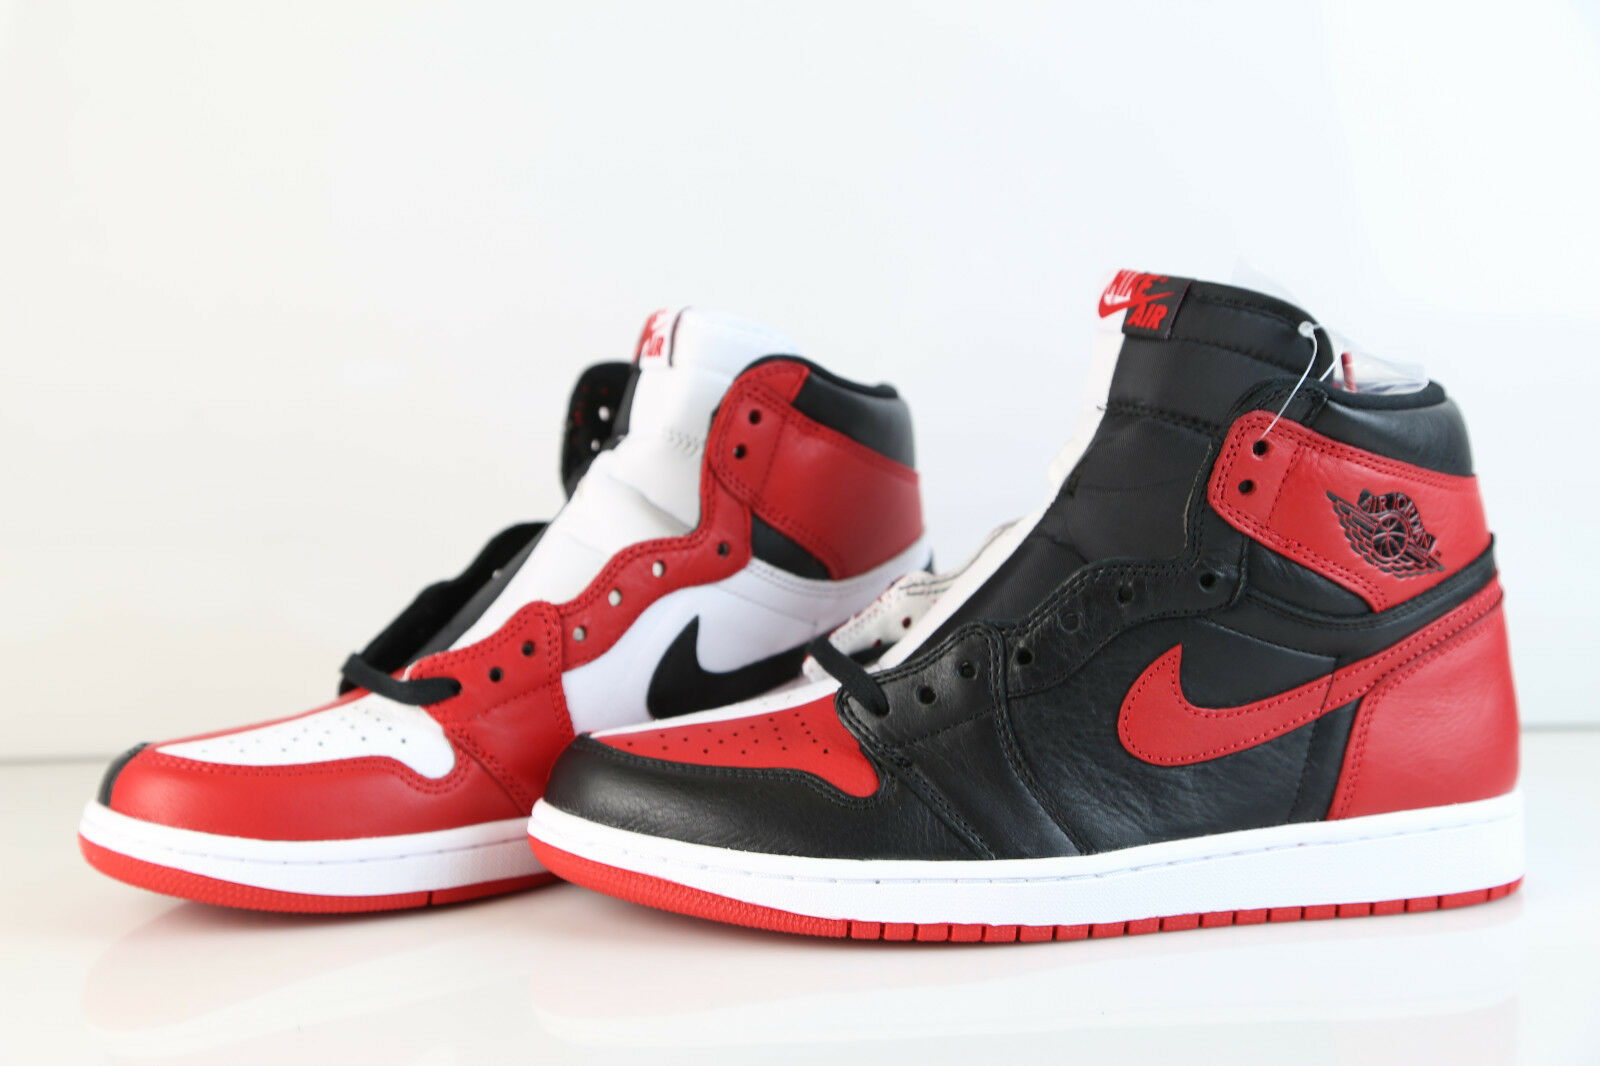 the latest ddc03 e9f39 Air Jordan Retro 1 High OG NRG Homage to Home Bred Chicago 861428-061 7-13  aj1 1 of 7Only 5 available ...